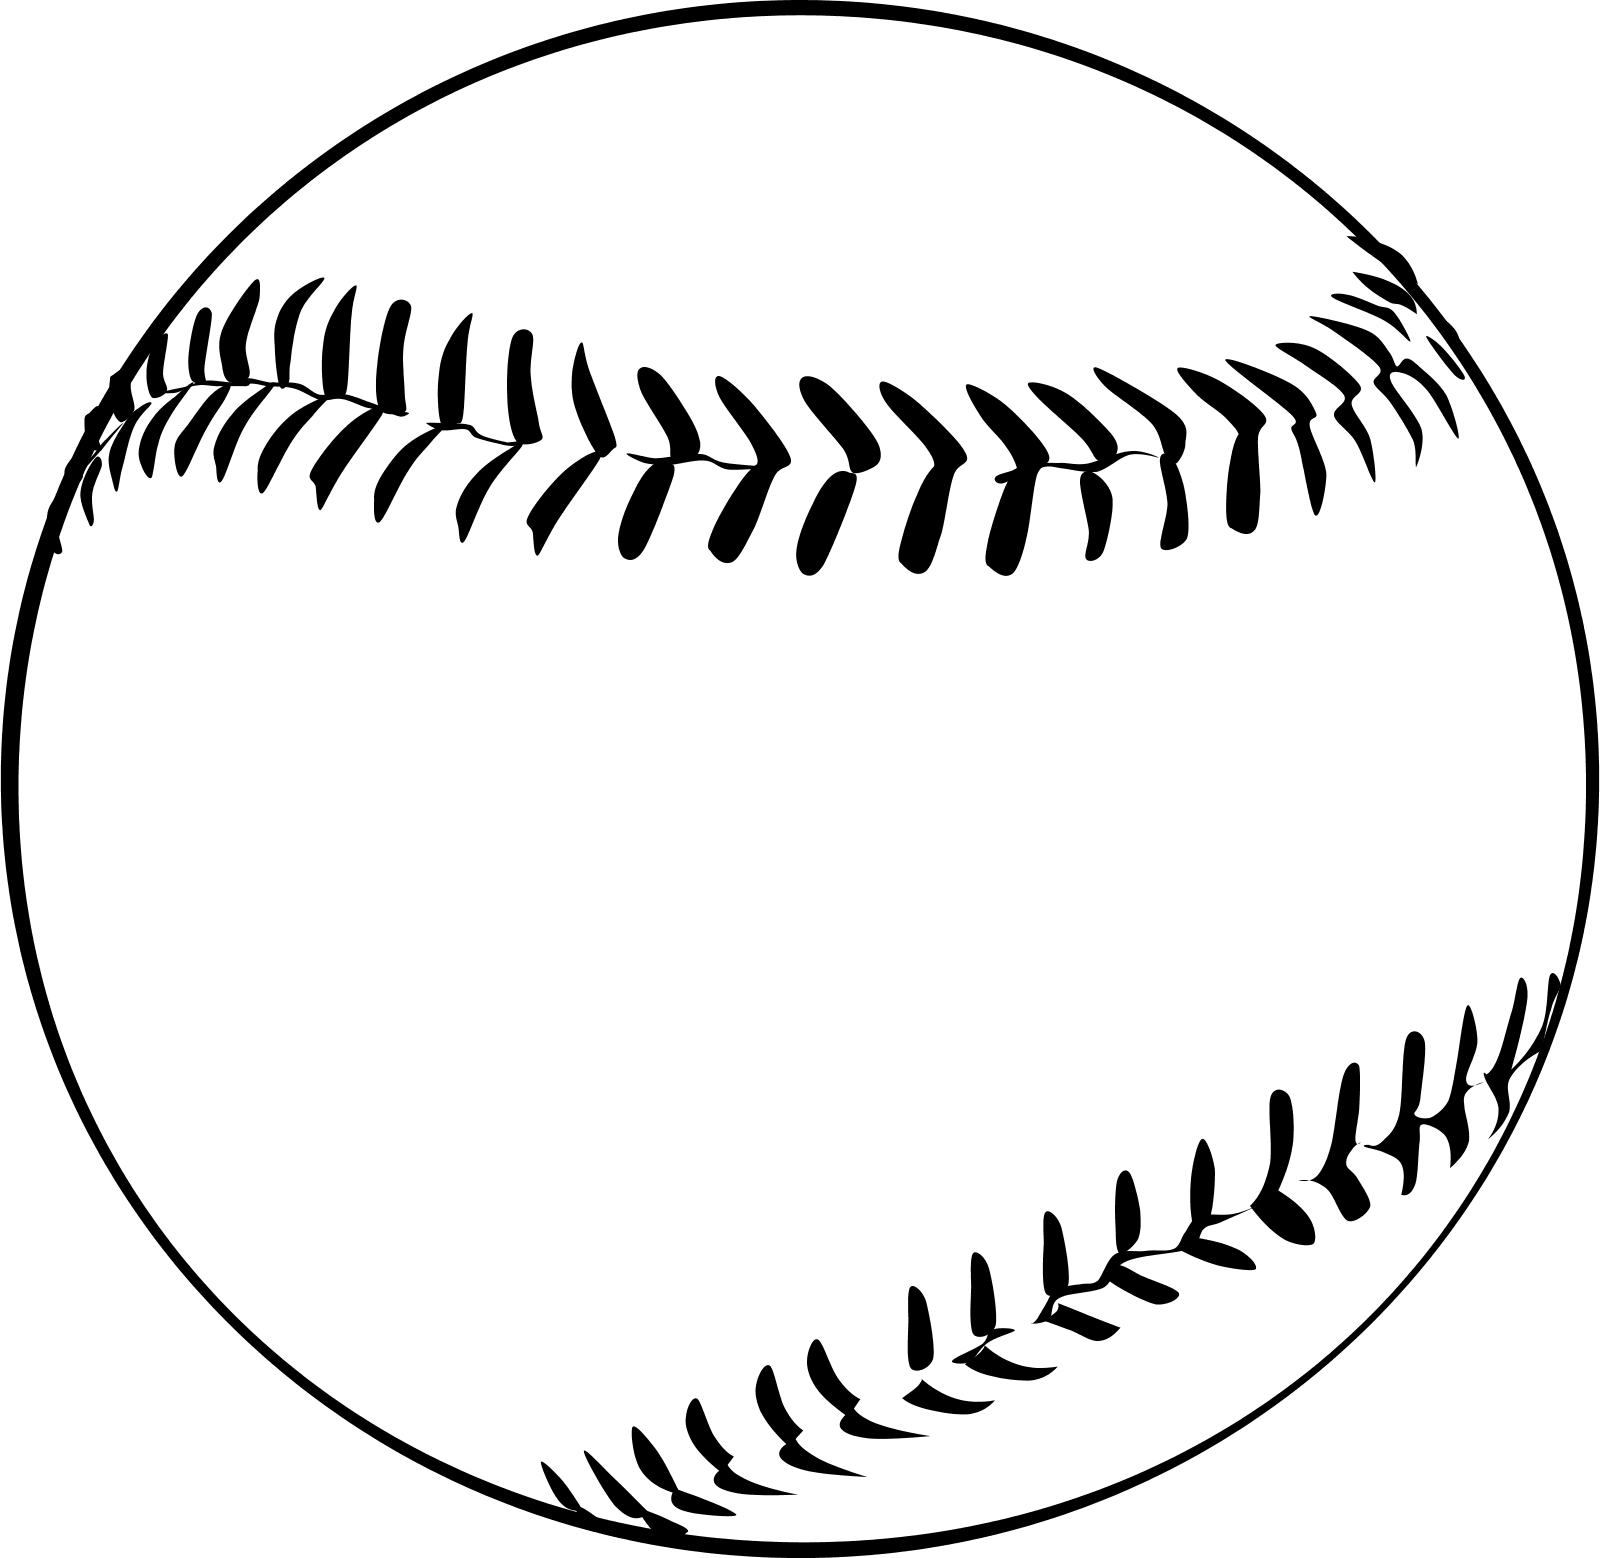 Baseball black and white clipart